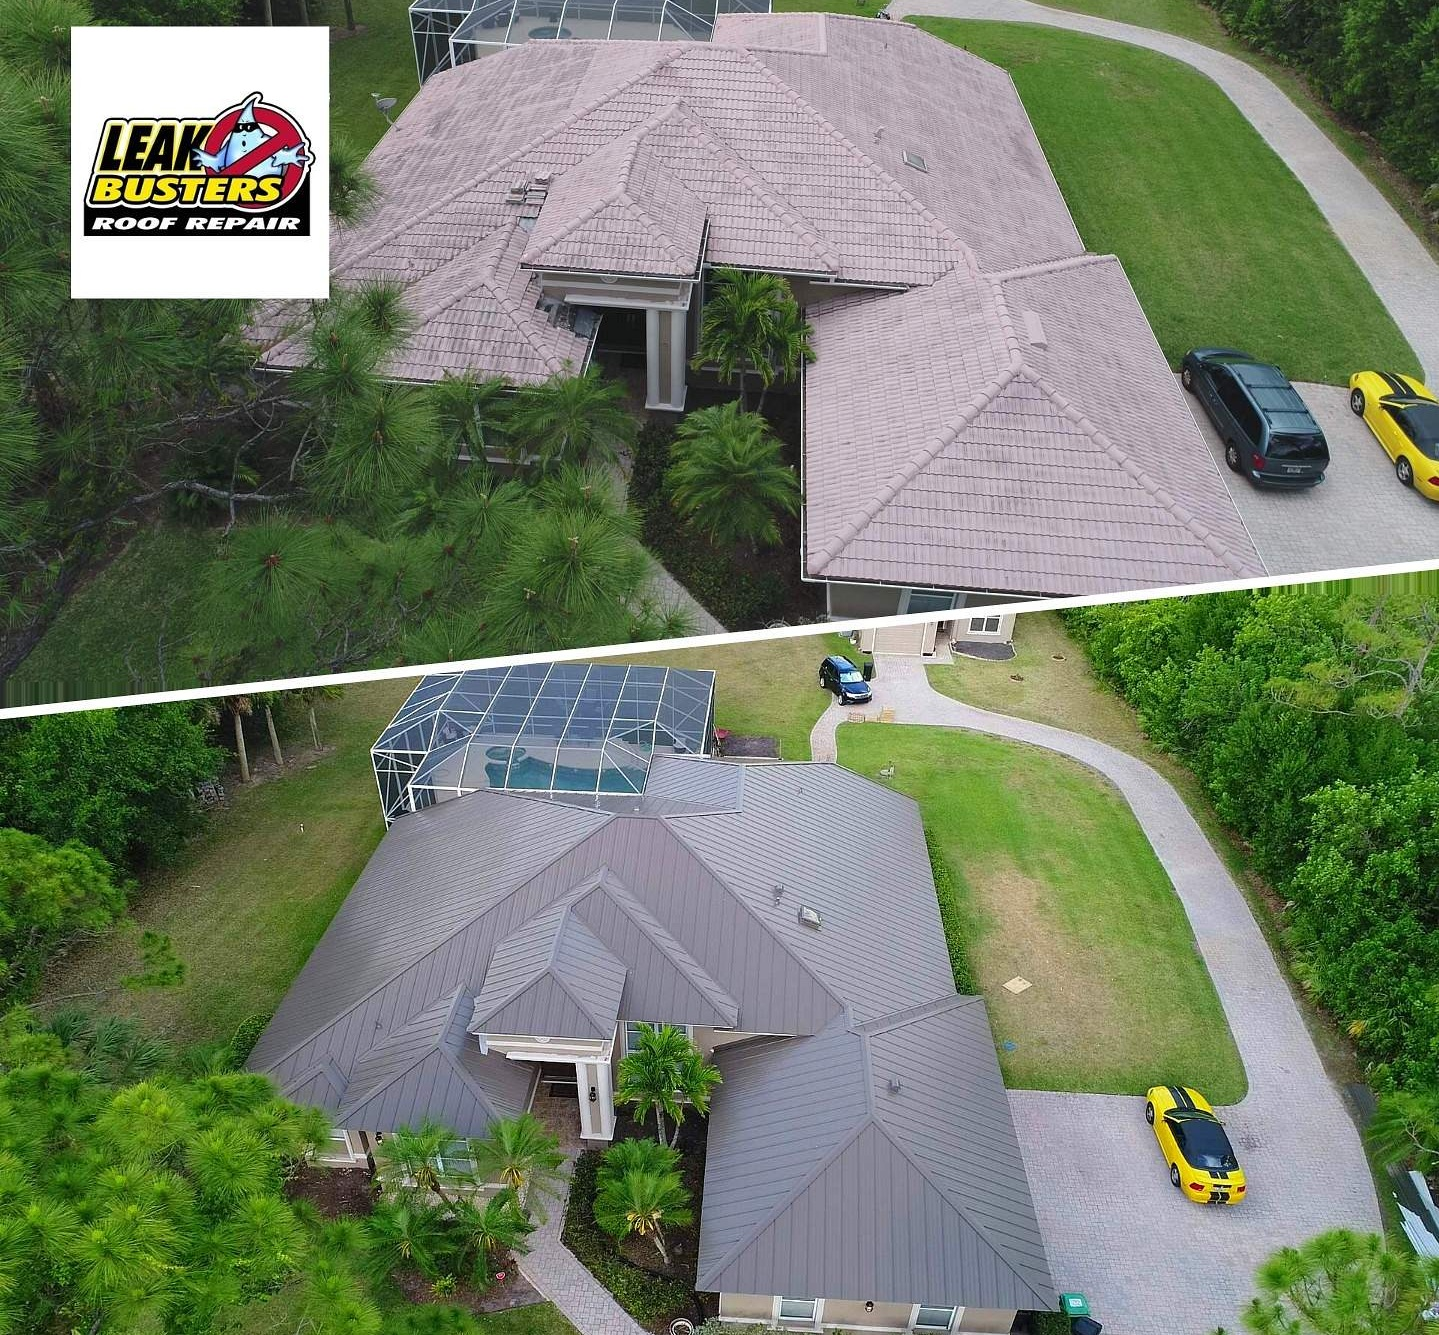 Reviews - Check out our reviews. We bring superior quality to every roof we're contracted for. This is what you can expect from a Leak Busters roof.